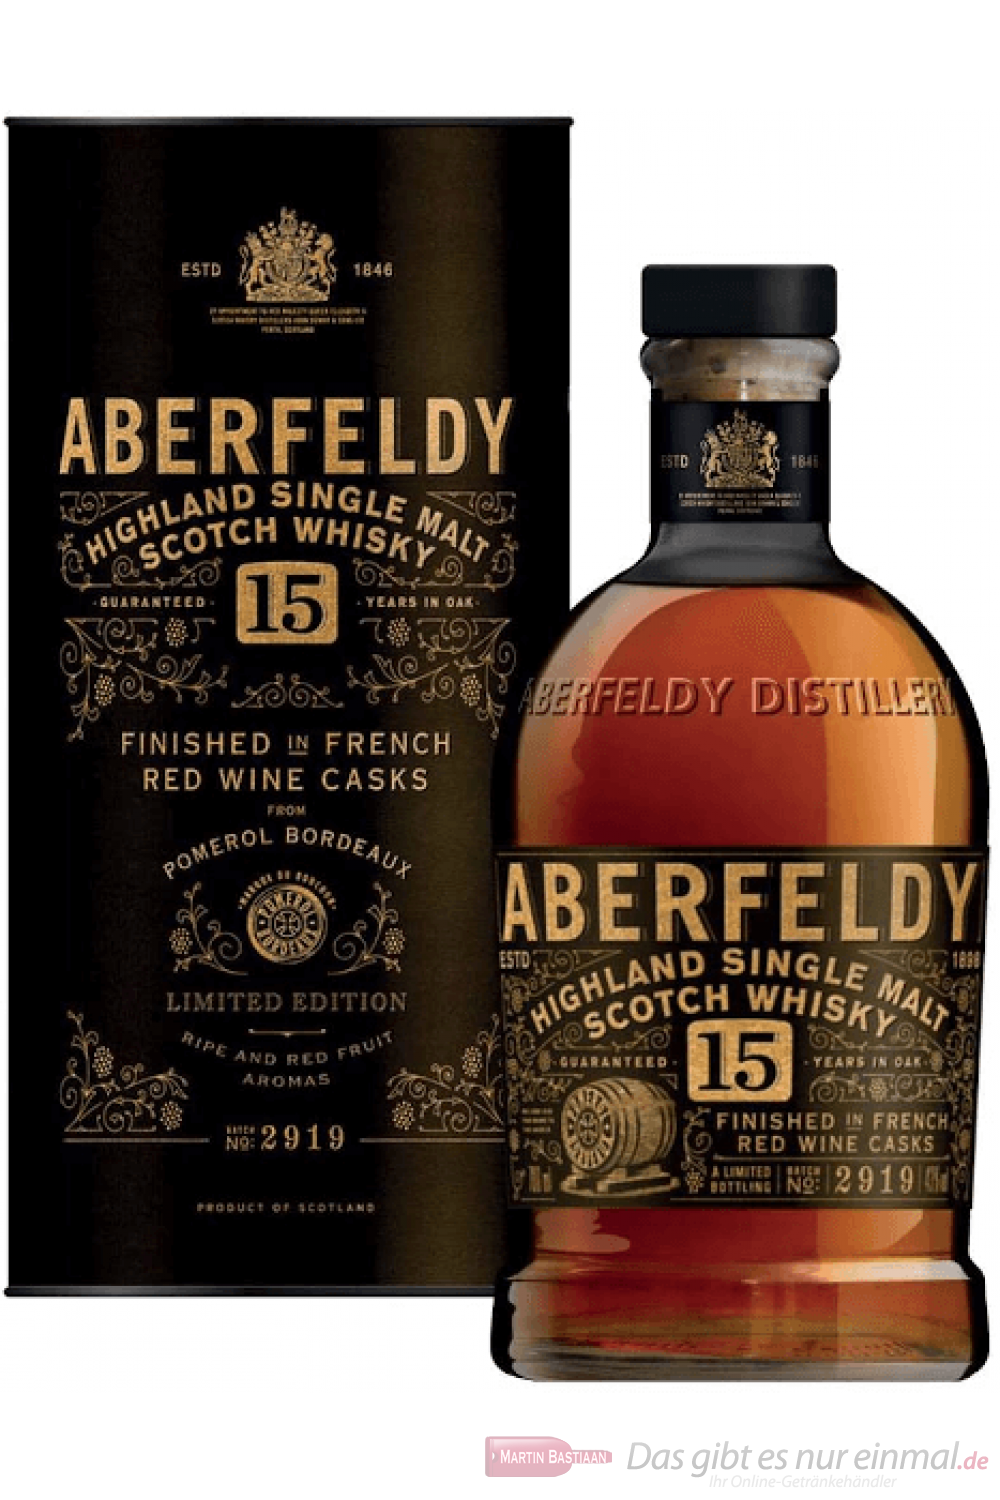 Aberfeldy 15 Jahre Highland Single Malt Scotch Whisky 0,7l